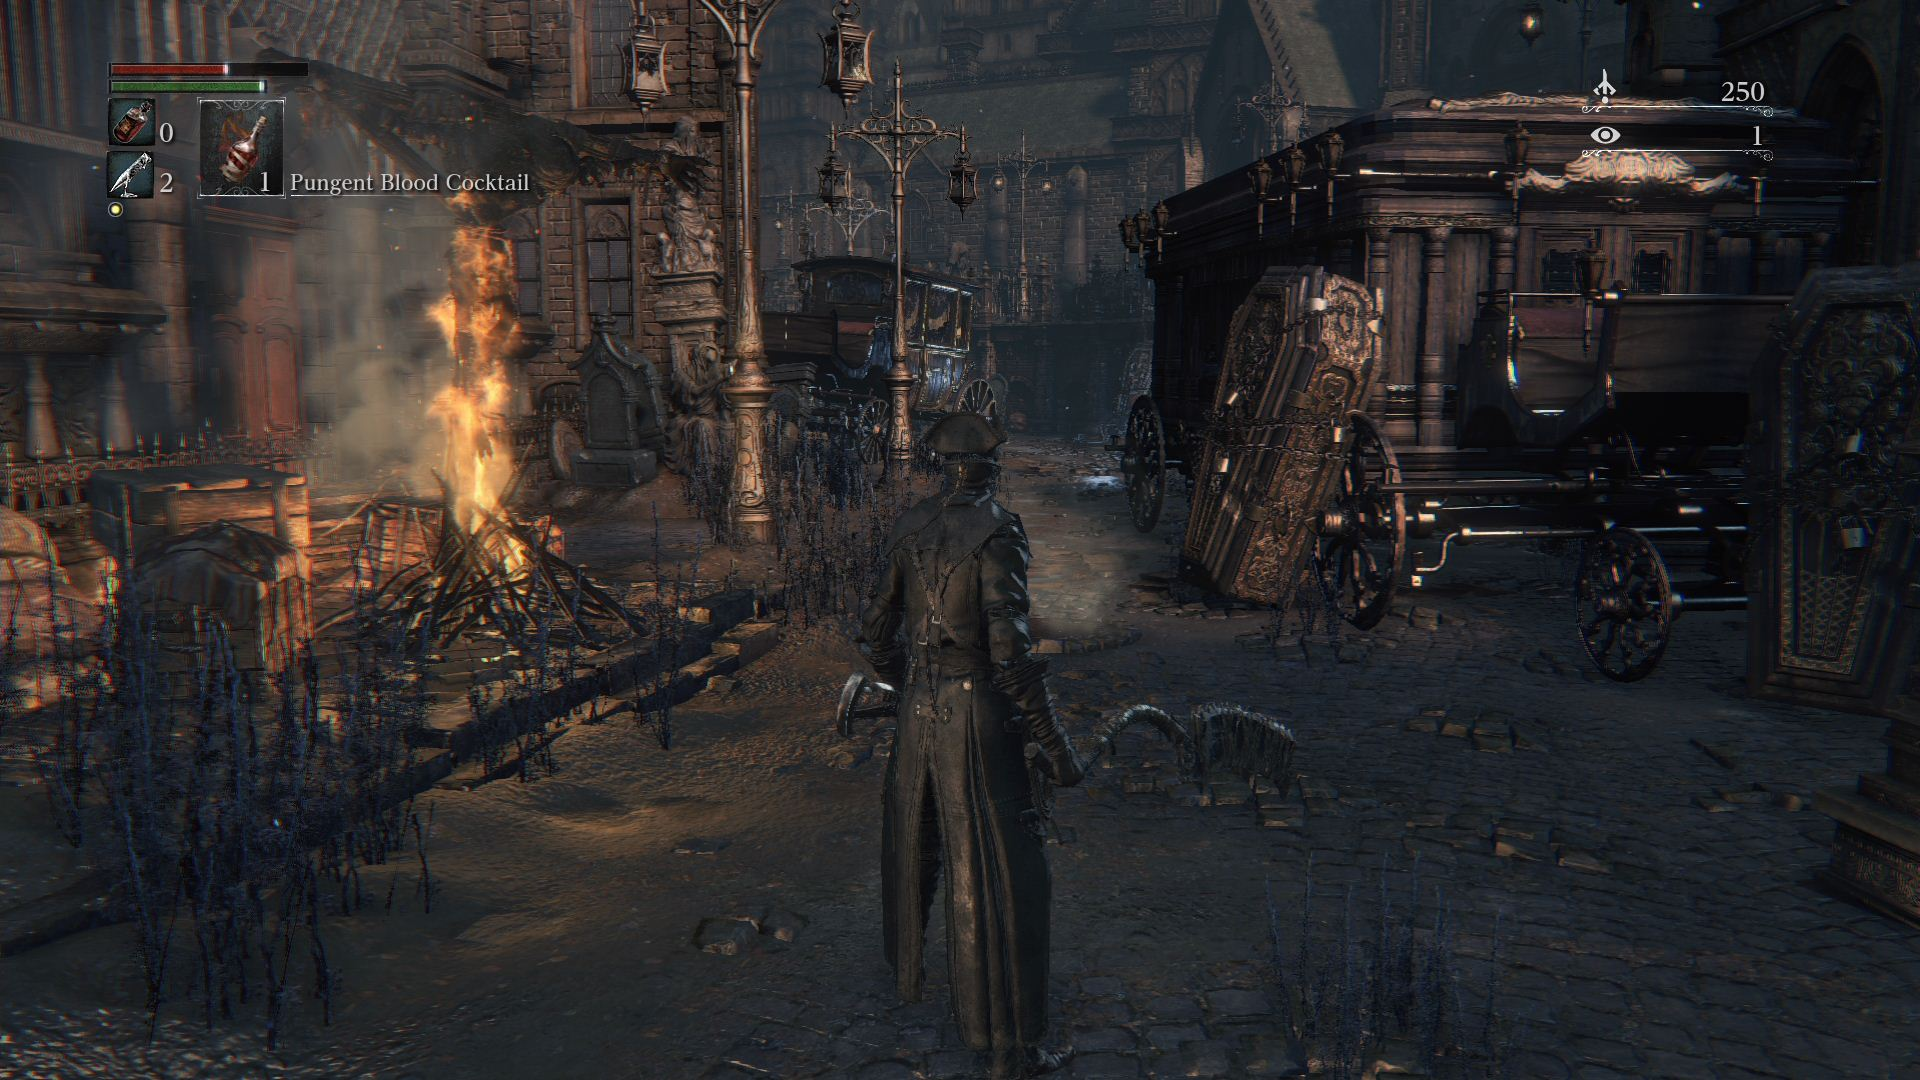 PS4 BLOODBORNE 9